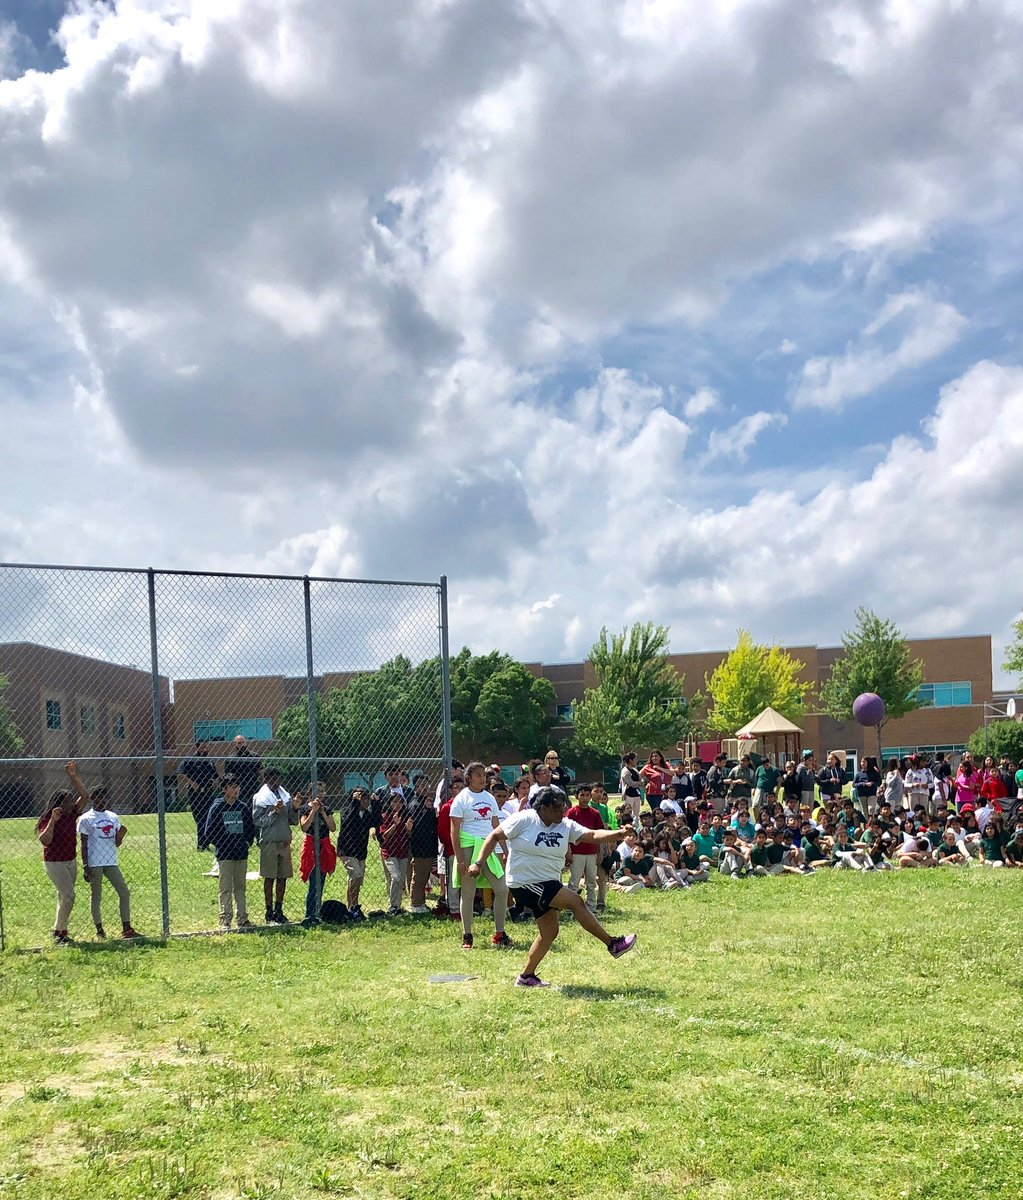 Closing out year 10 with a kickball game with my fellow @CBEBears against future Raiders and Vikings #RISDconnects